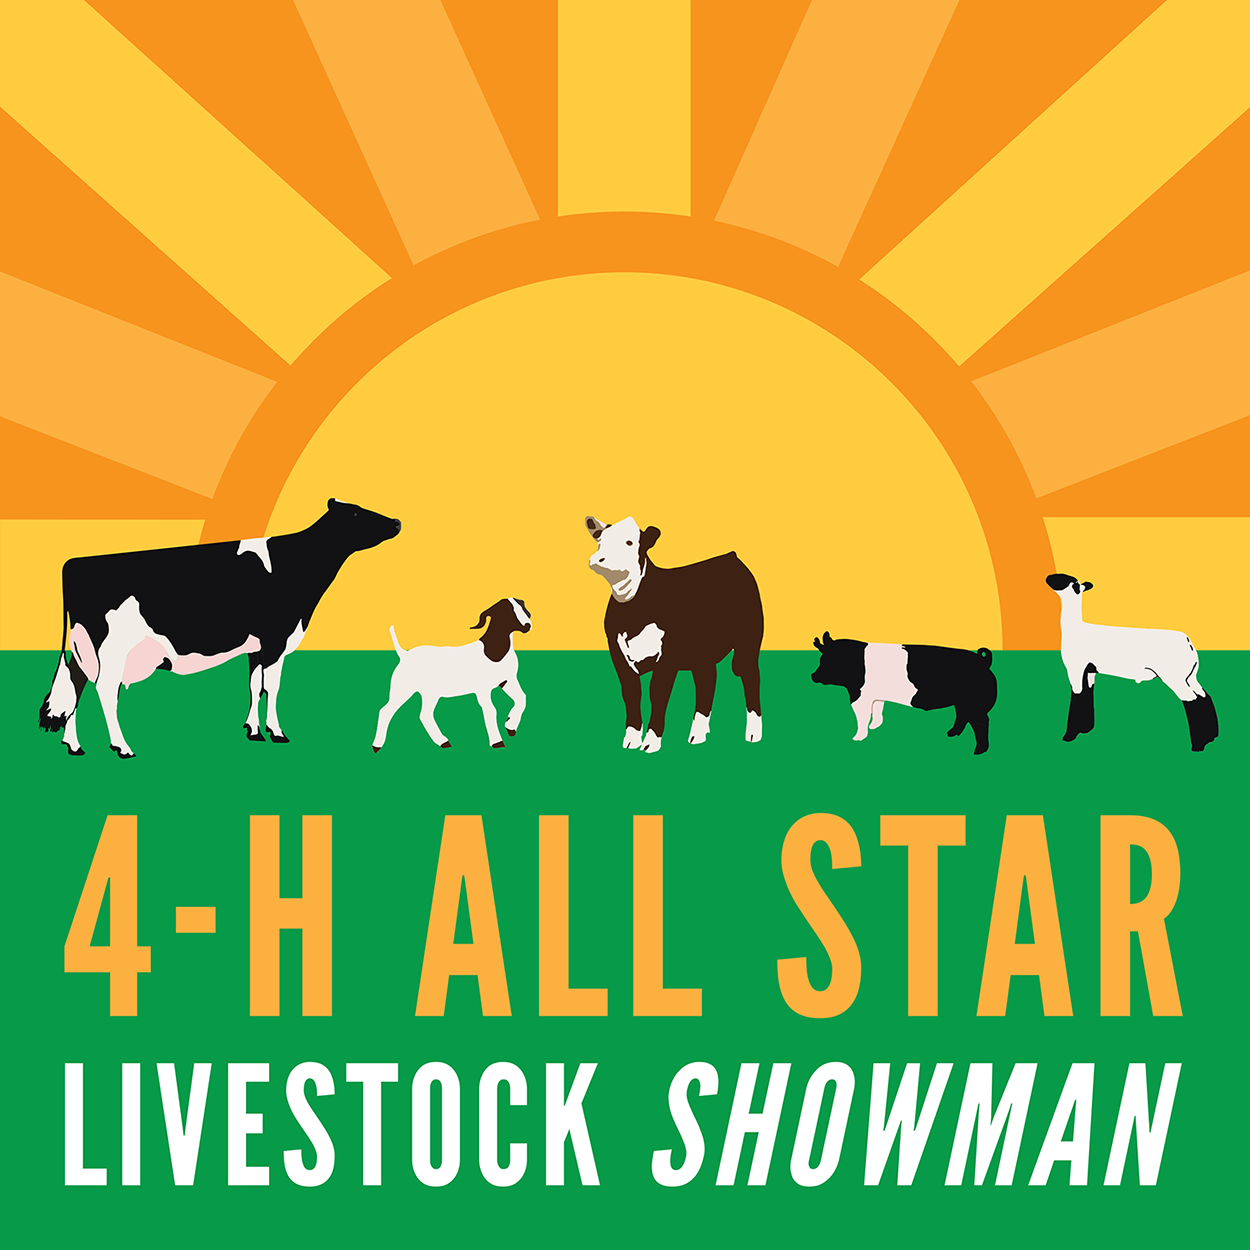 4 h poster designs -  Sticker Design Howard County 4 H All Star Livestock Showmanship Contest